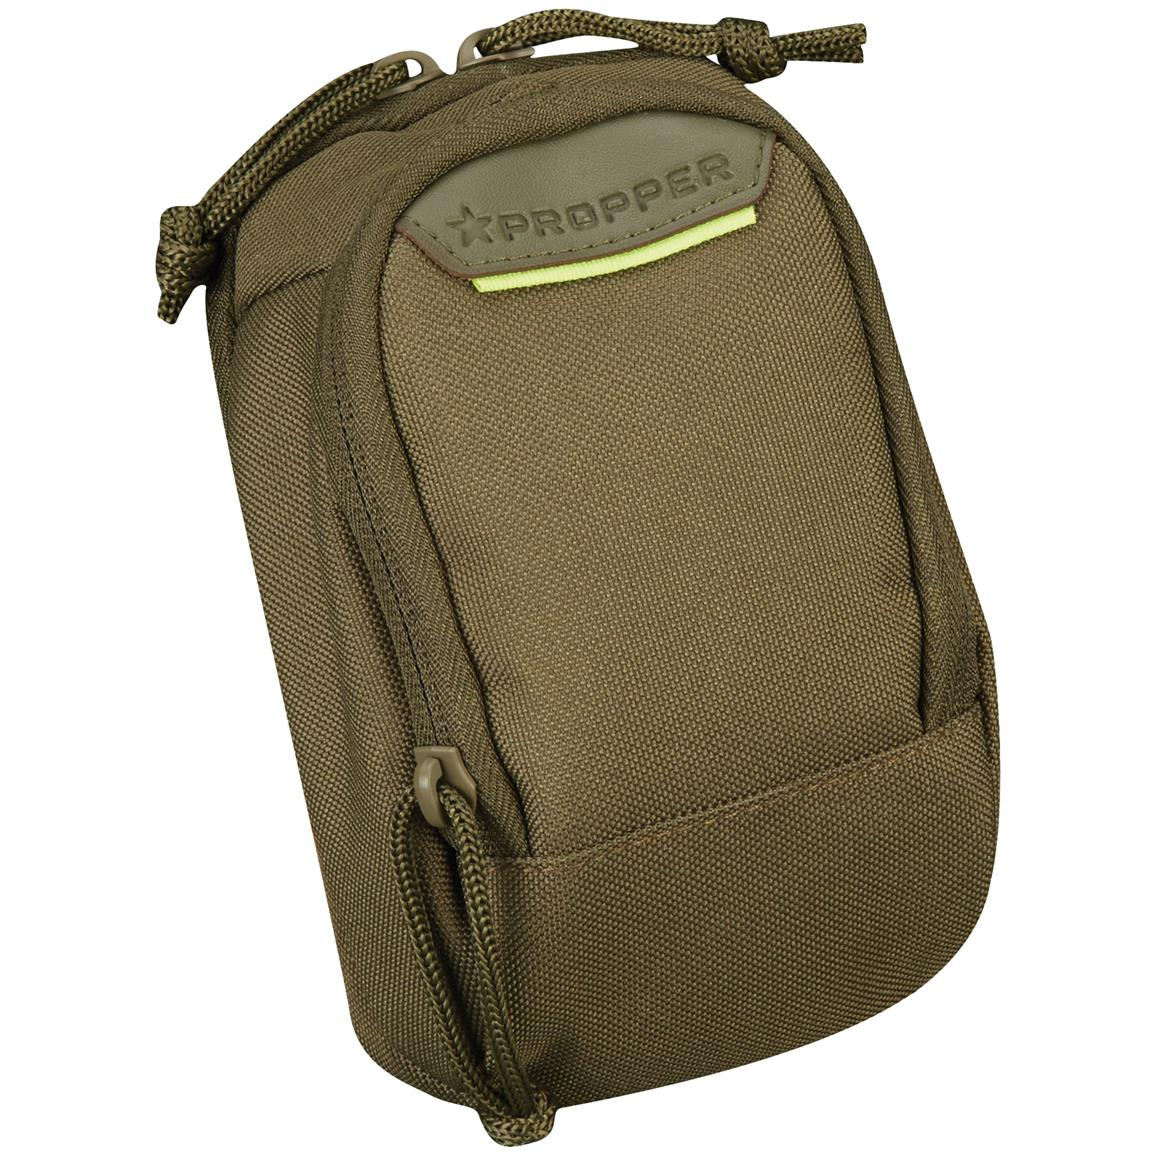 Propper 2-pocket Media Pouch with MOLLE, Olive Drab